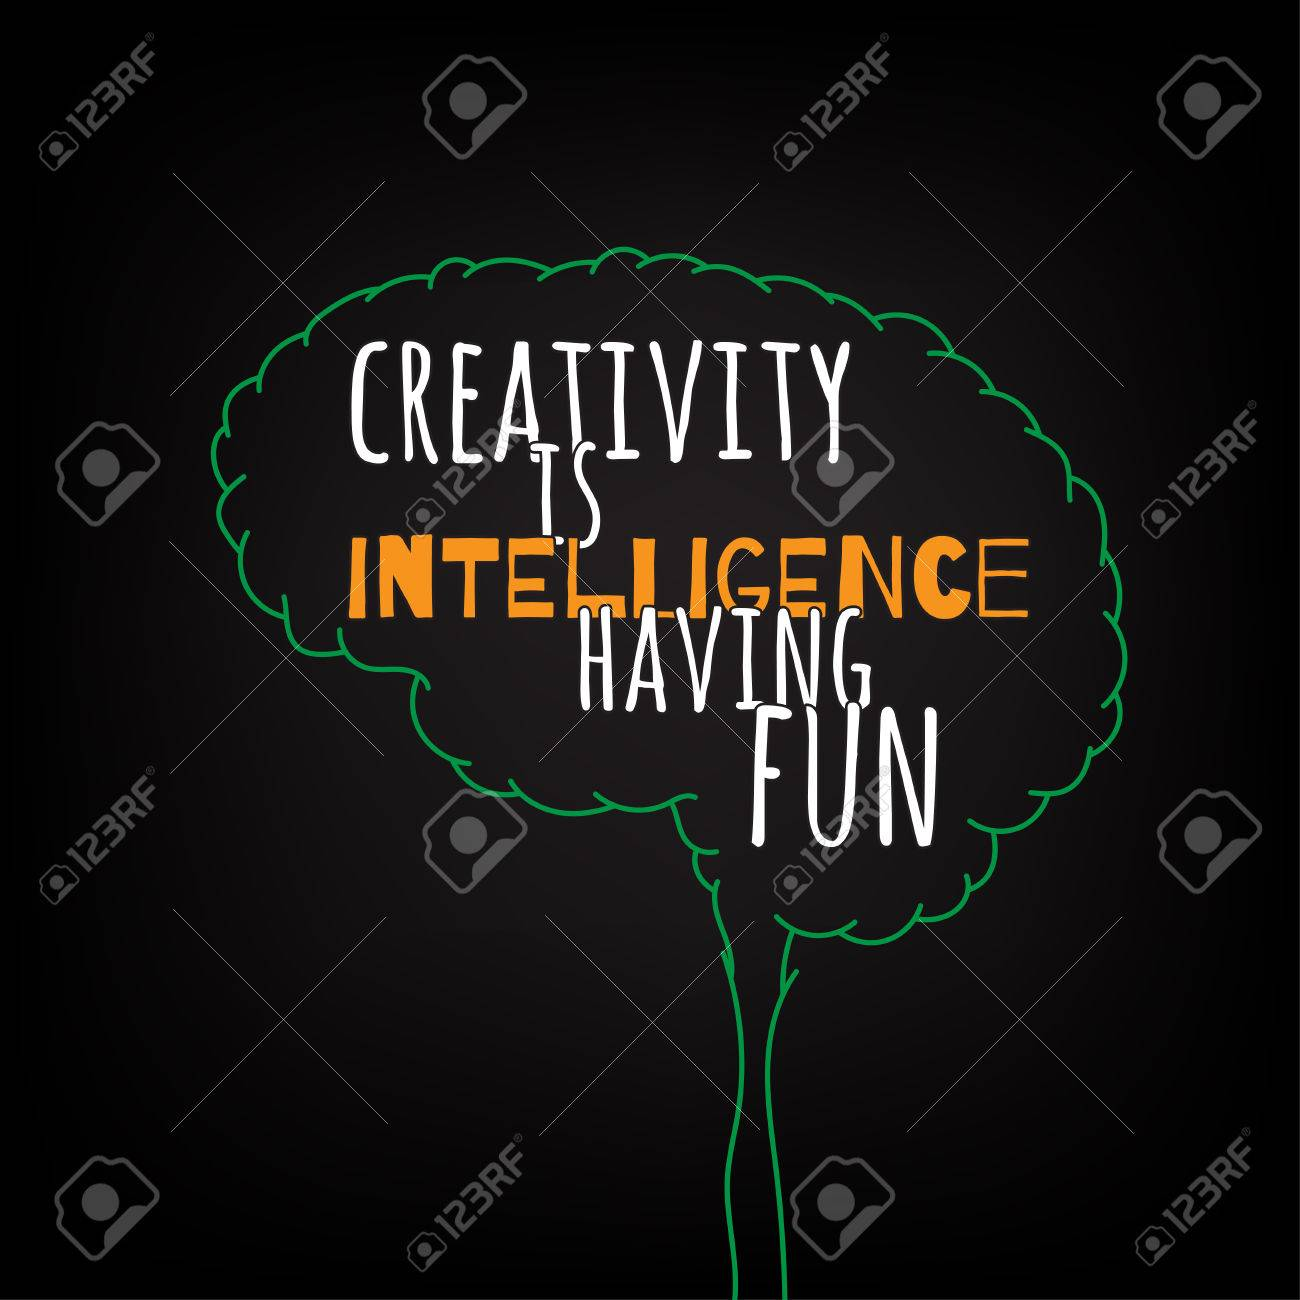 Creativity Is Intelligence Having Fun Motivation Clever Ideas In The Brain  Poster. Text Lettering Of